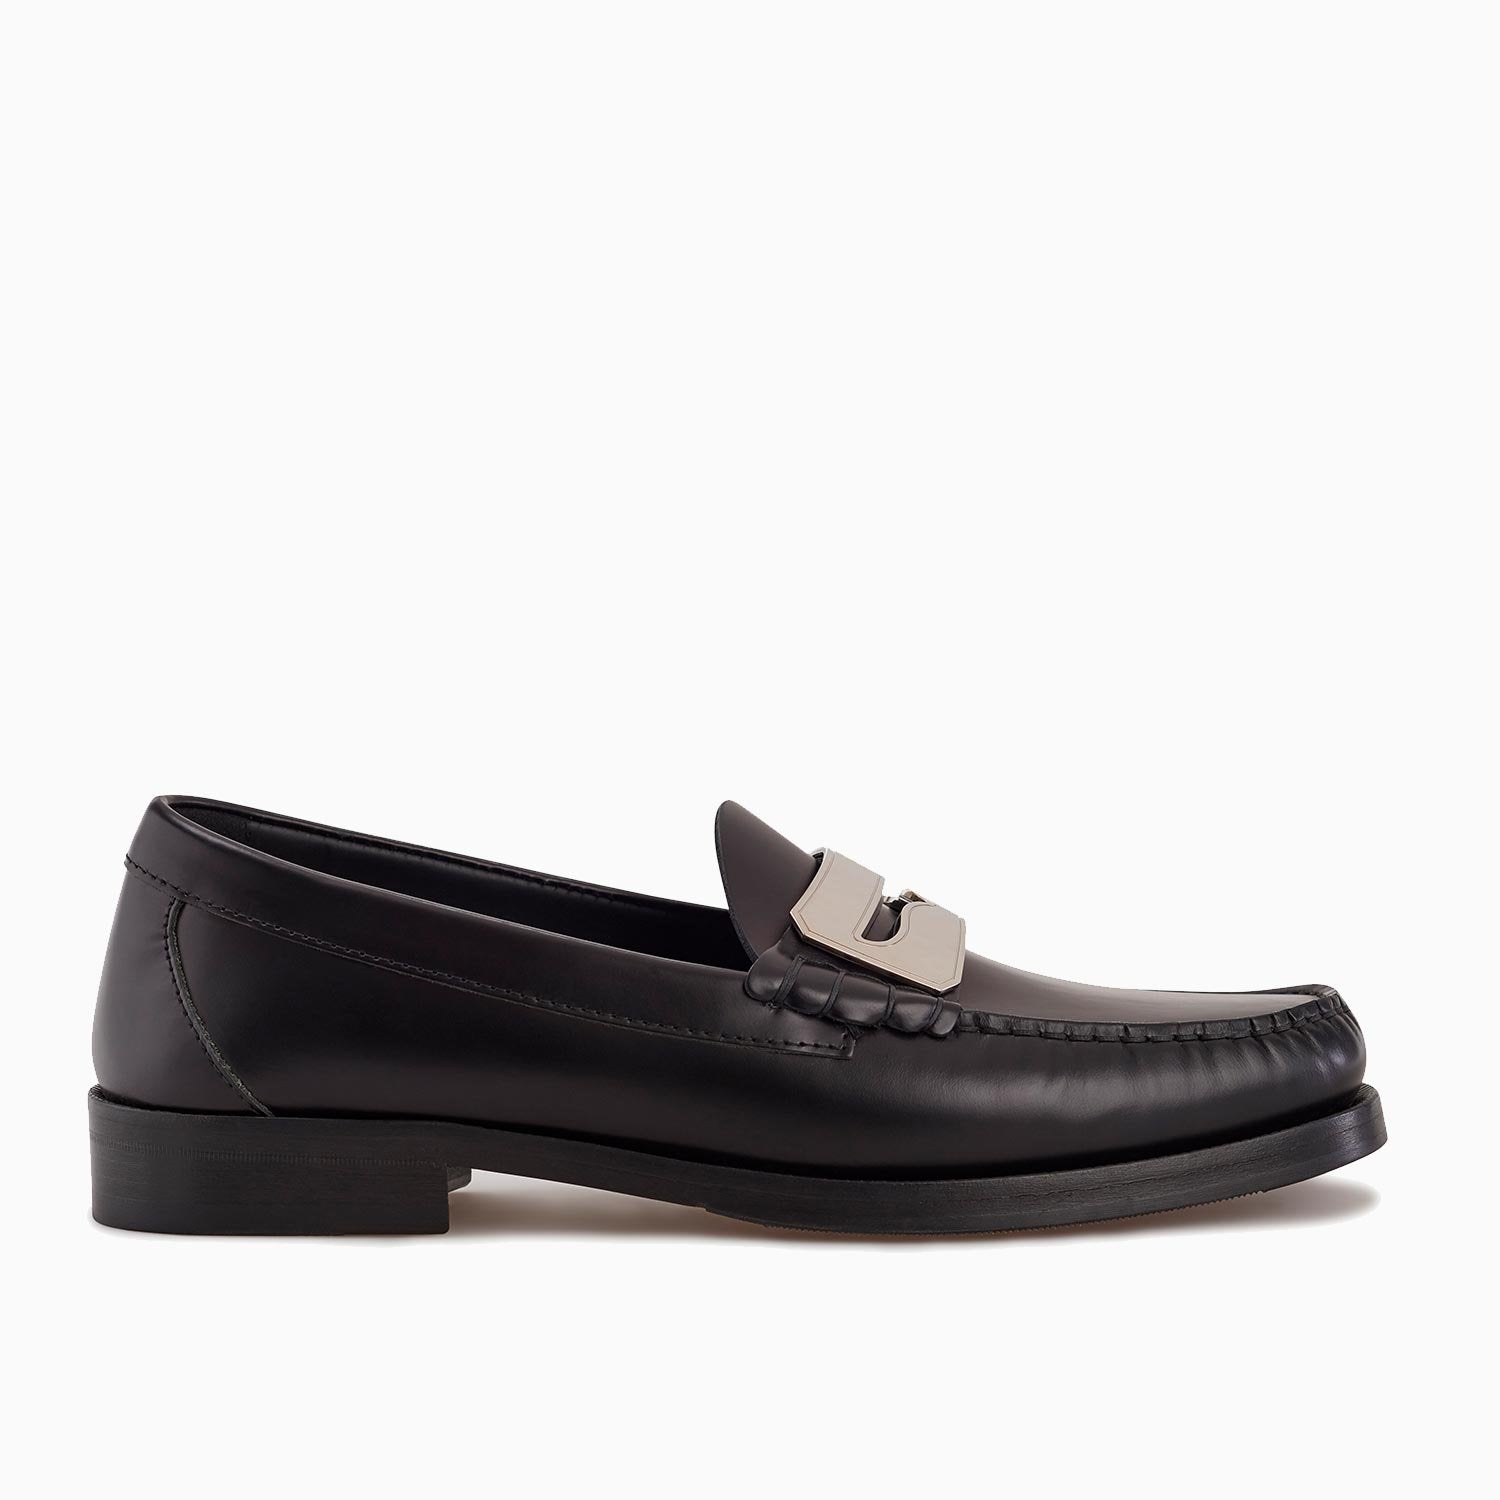 Town Loafer | Black/Silver-Buscemi